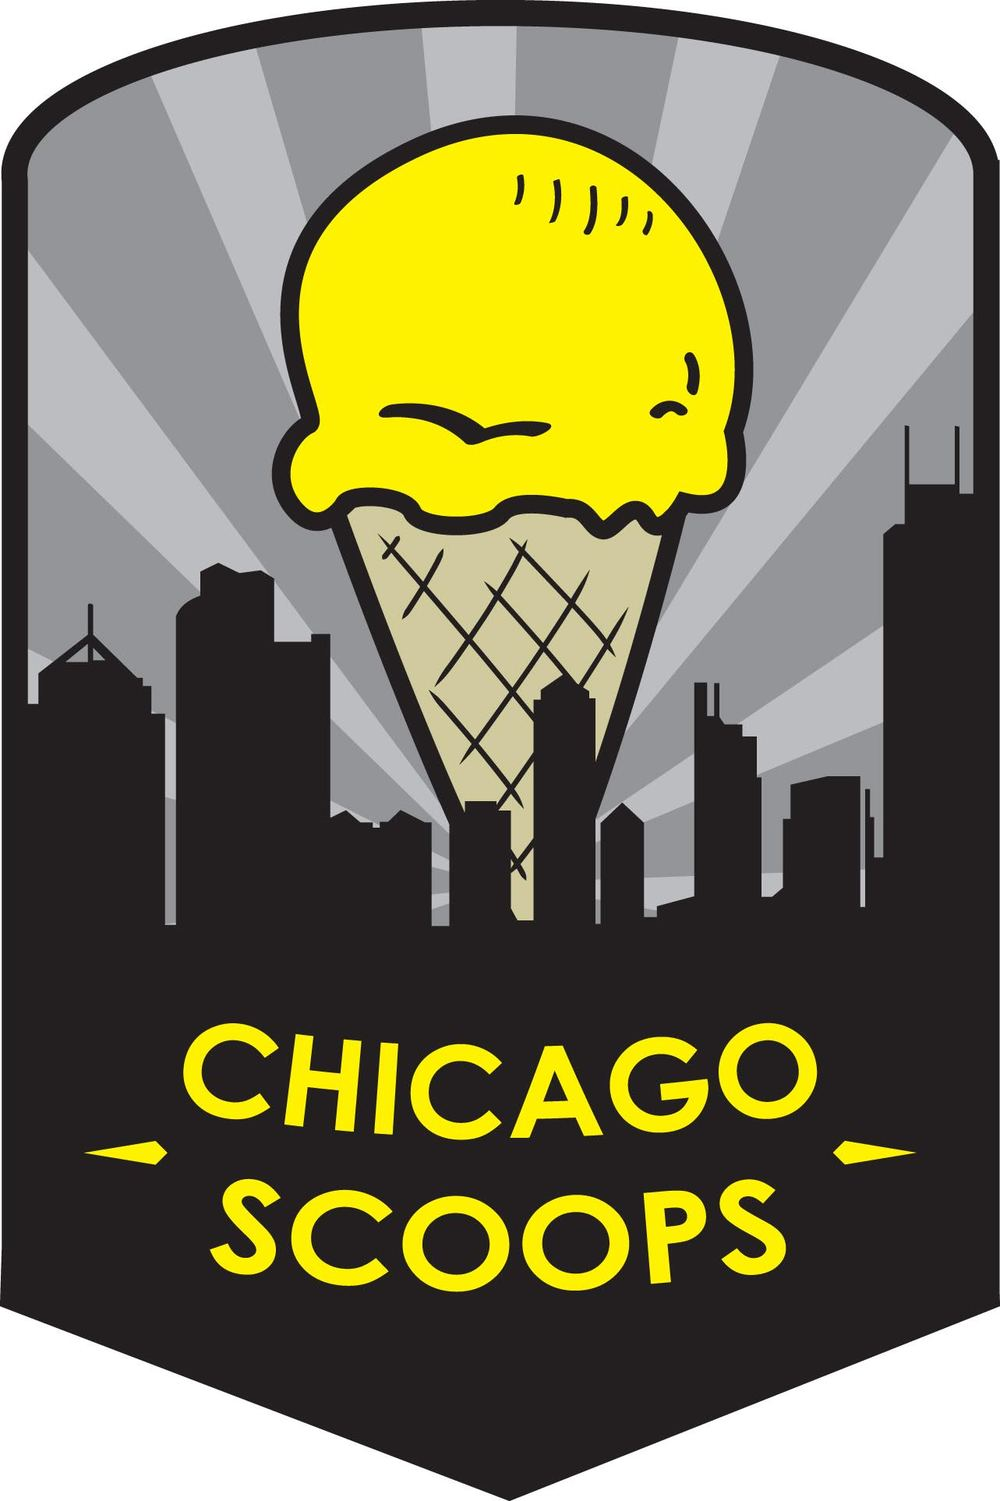 Chicago Scoops.jpg